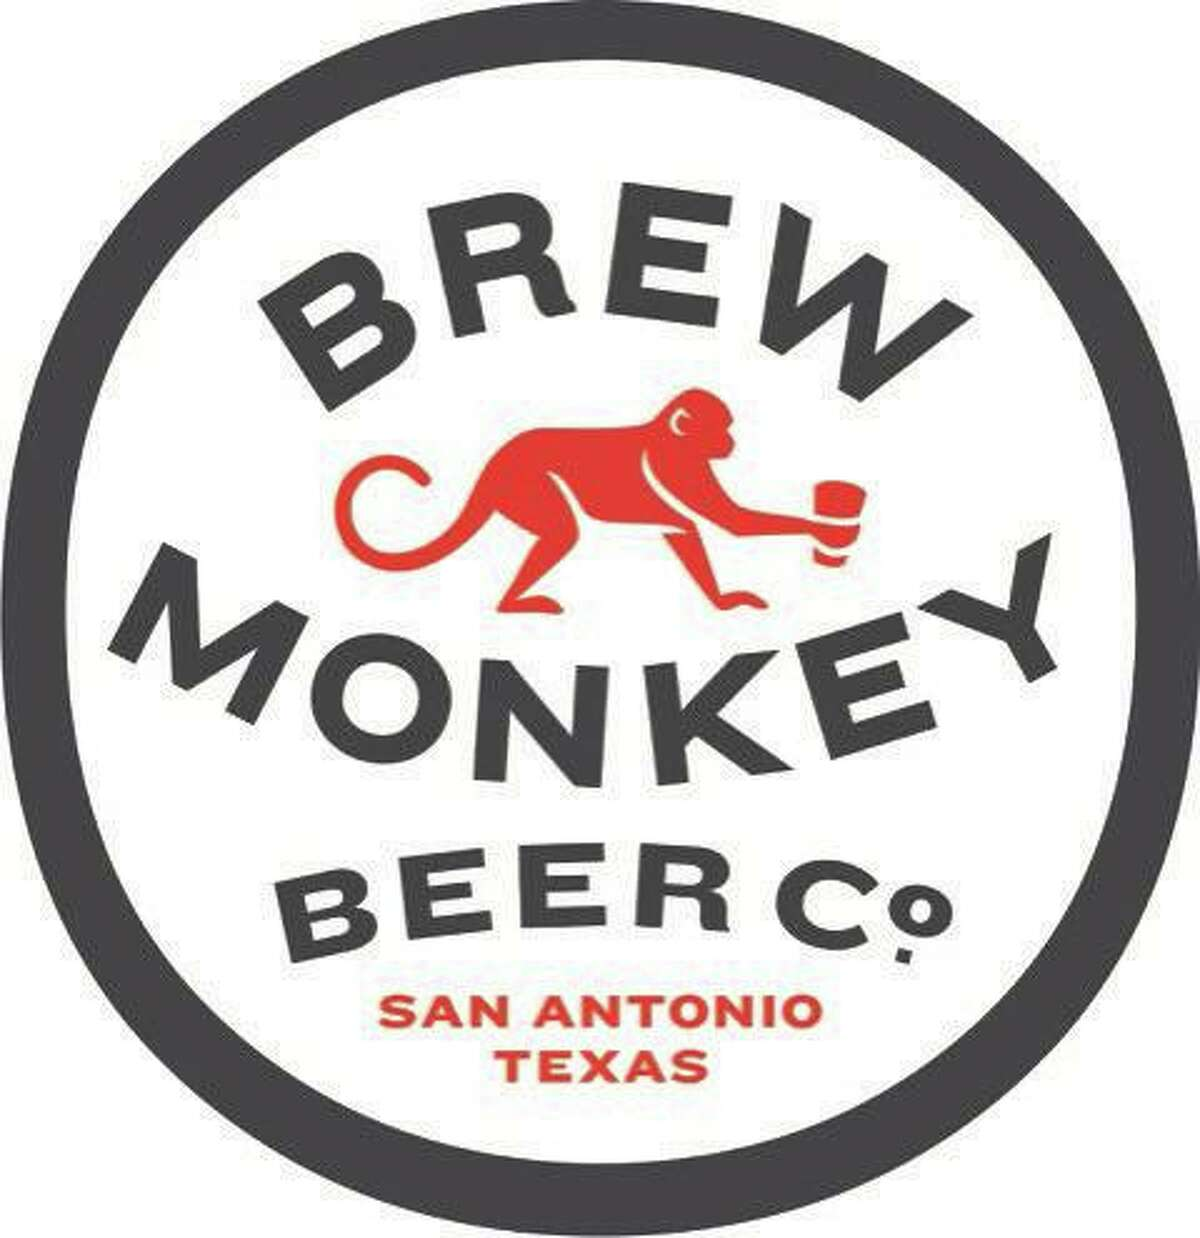 This is one of two logo designs for the Brew Monkey Beer Co., which may open this summer.